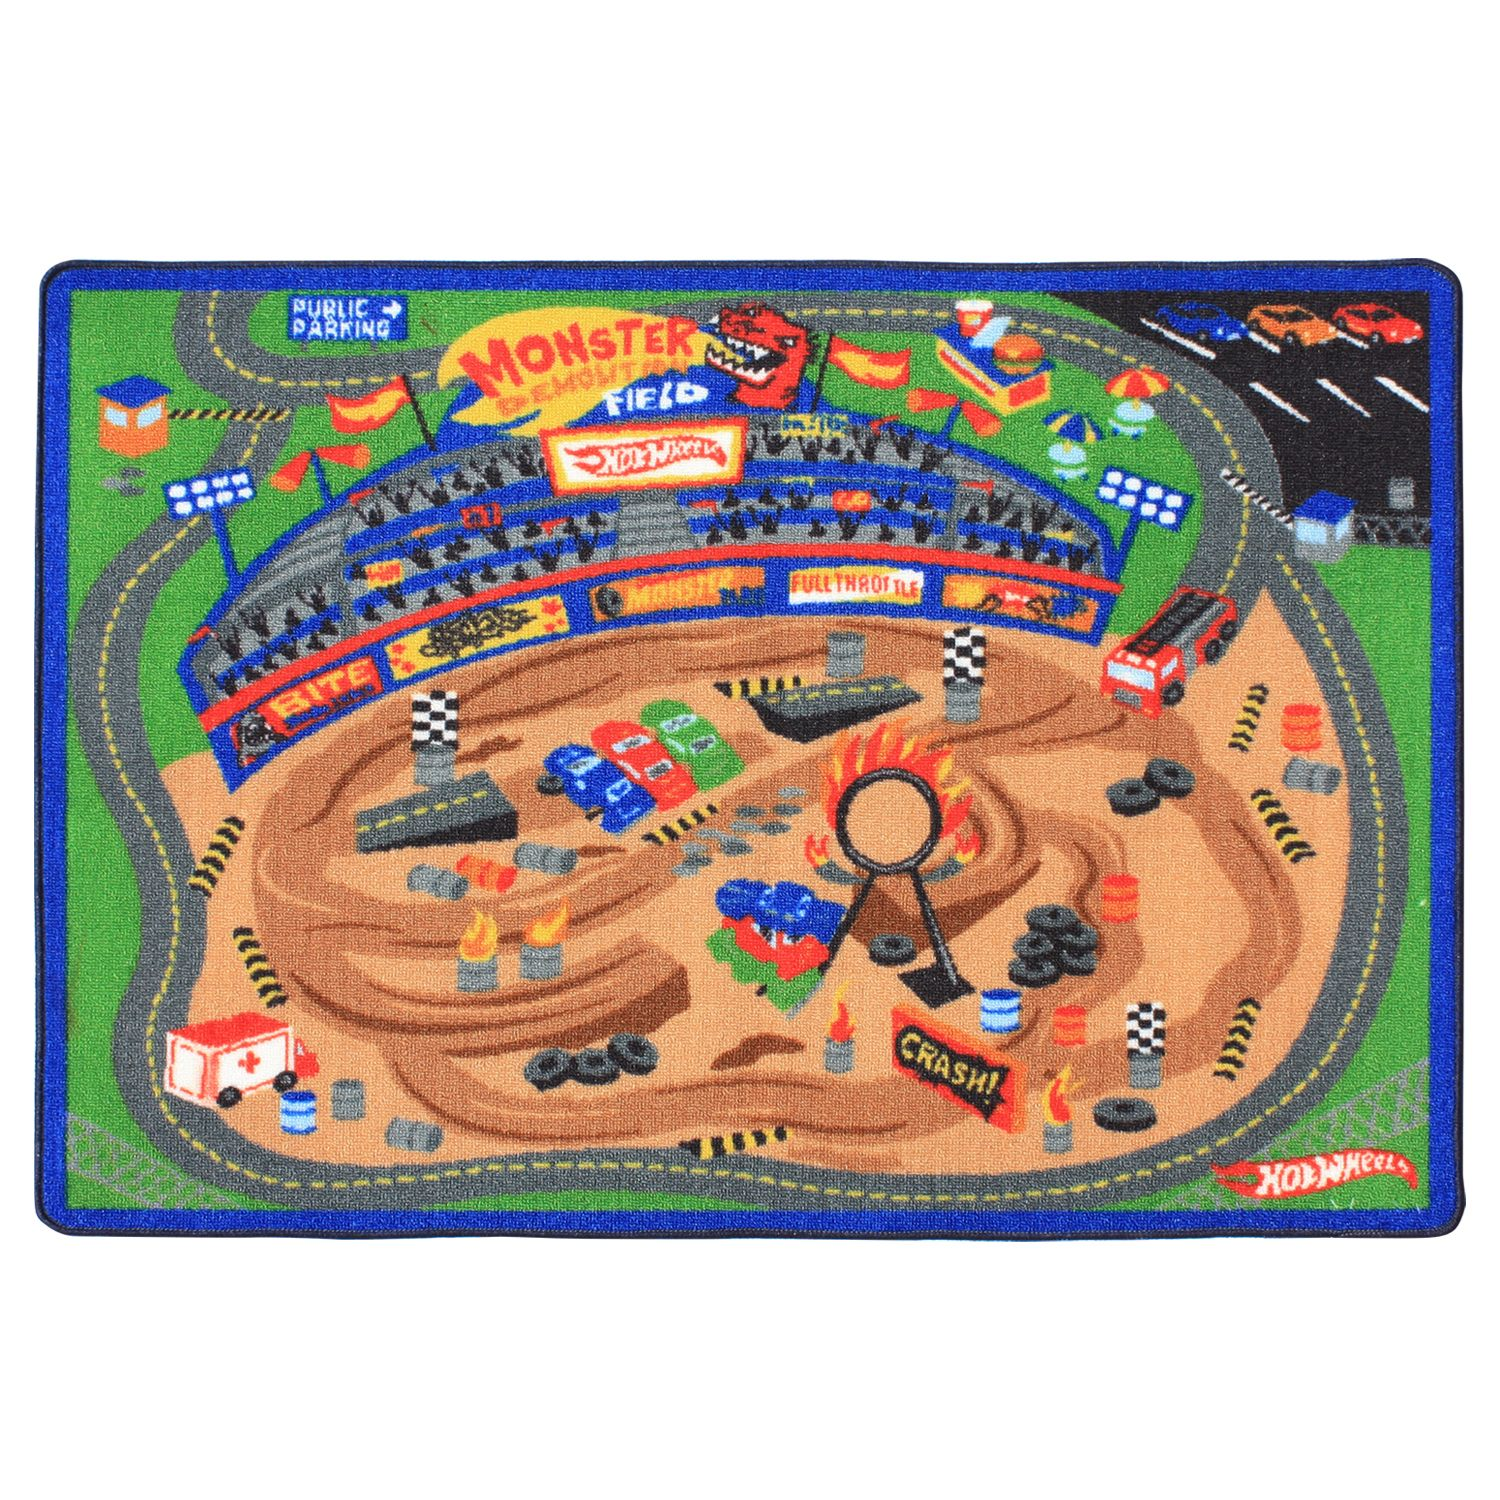 This Disney/Pixar Cars Racetrack Game Rug includes 2 toy cars and 2 road  signs.